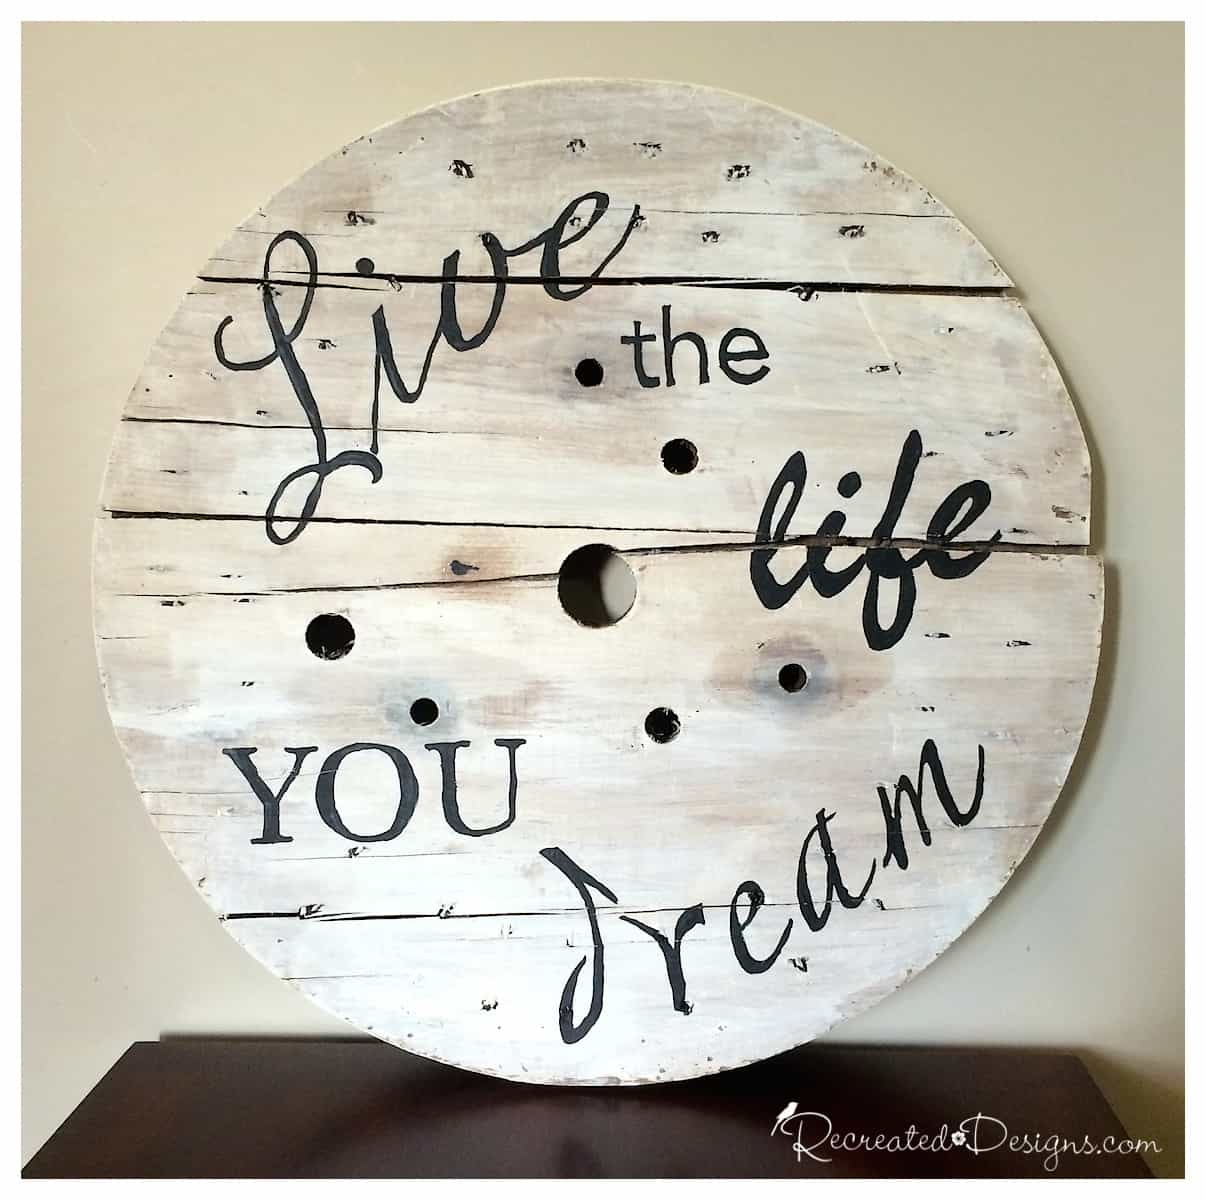 old wooden spool turned into wall art